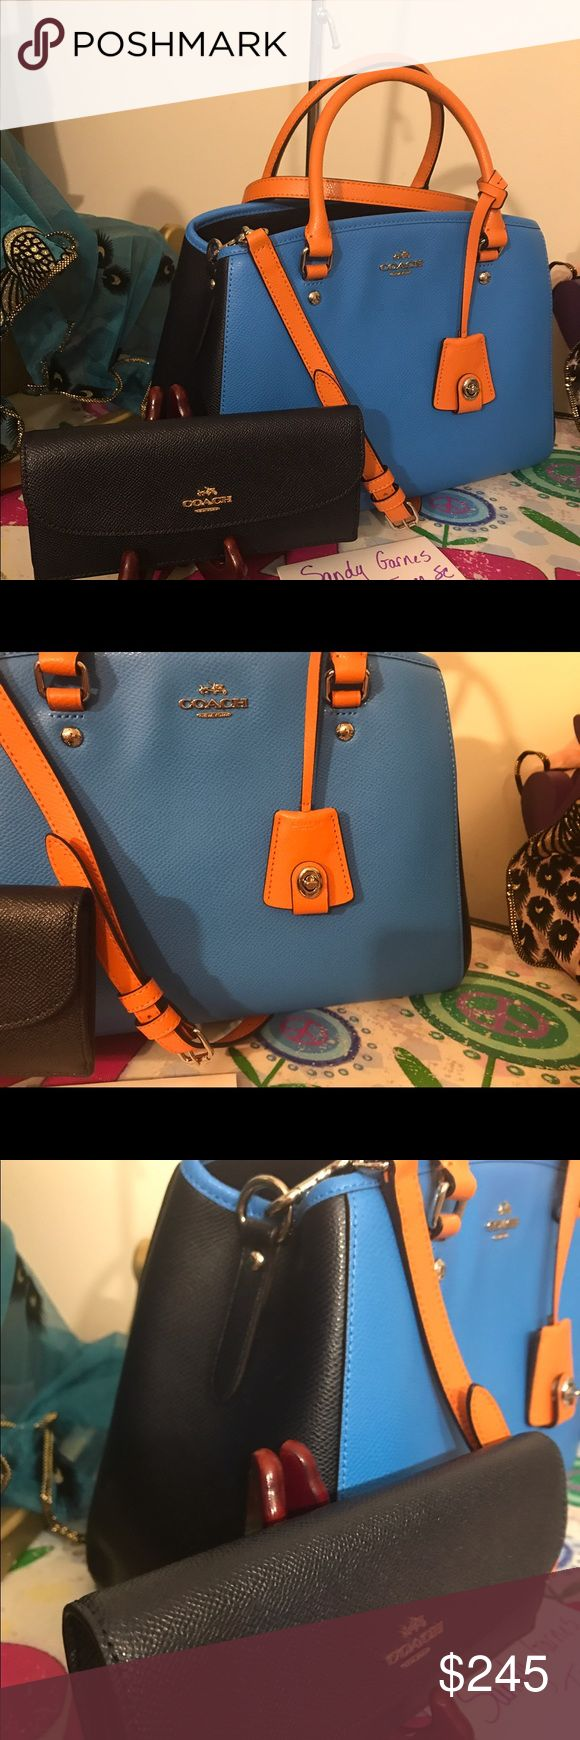 """Nwt Coach Margot color-block set No trades or holds. Price is firm.  NWT Coach Margot Leather Color-block set. Colors are orange, turquoise  and midnight. Wallet is nwt and is in midnight leather. Purse measures 13"""" across bottom, 11"""" across bottom, 9.5"""" tall, double leather handles with a 9"""" drop and a cross body strap with up to a 23"""" strap drop. Coach Bags Satchels"""